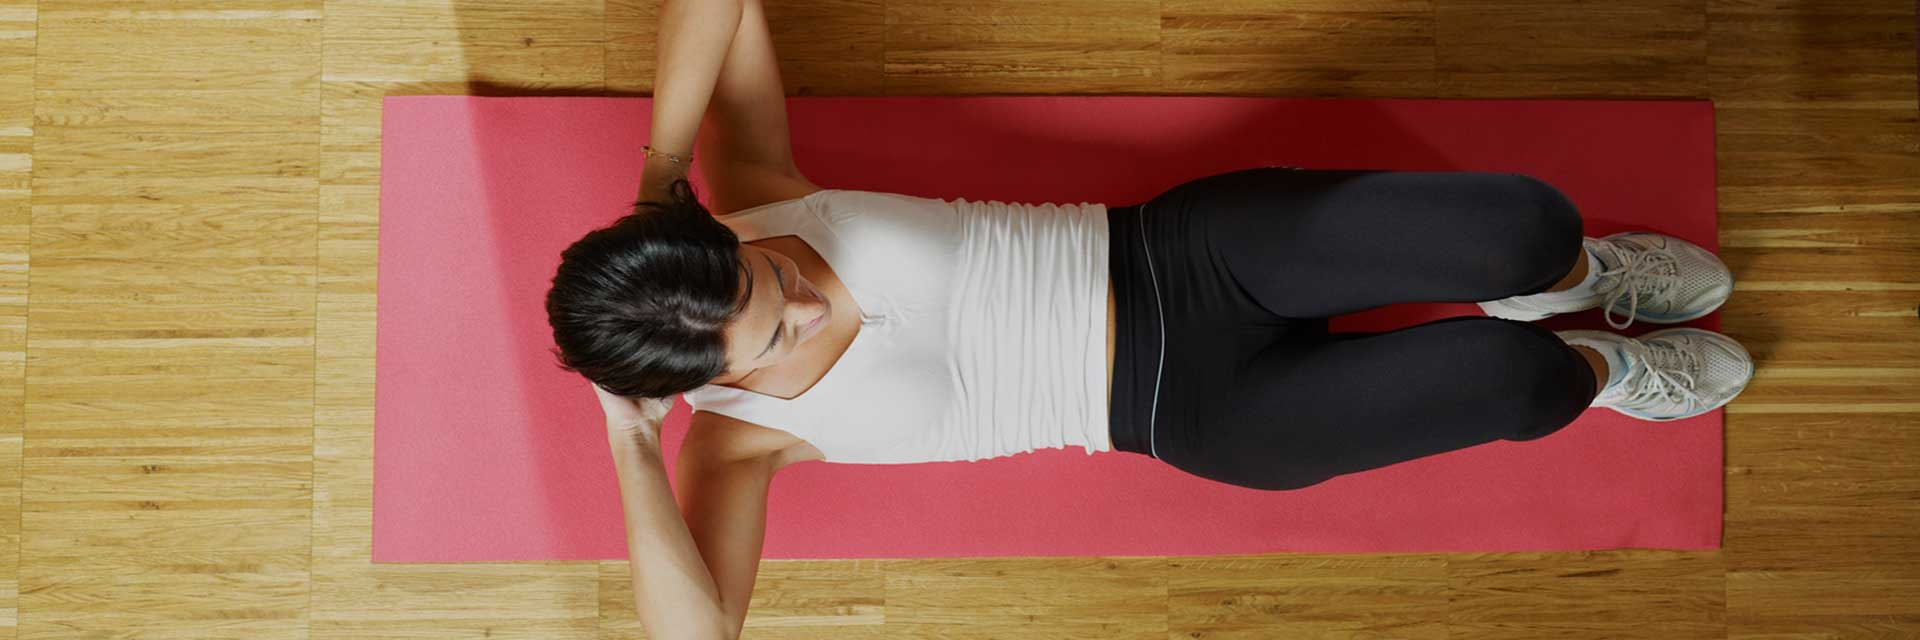 butte-premier-physical-therapy-yoga-1